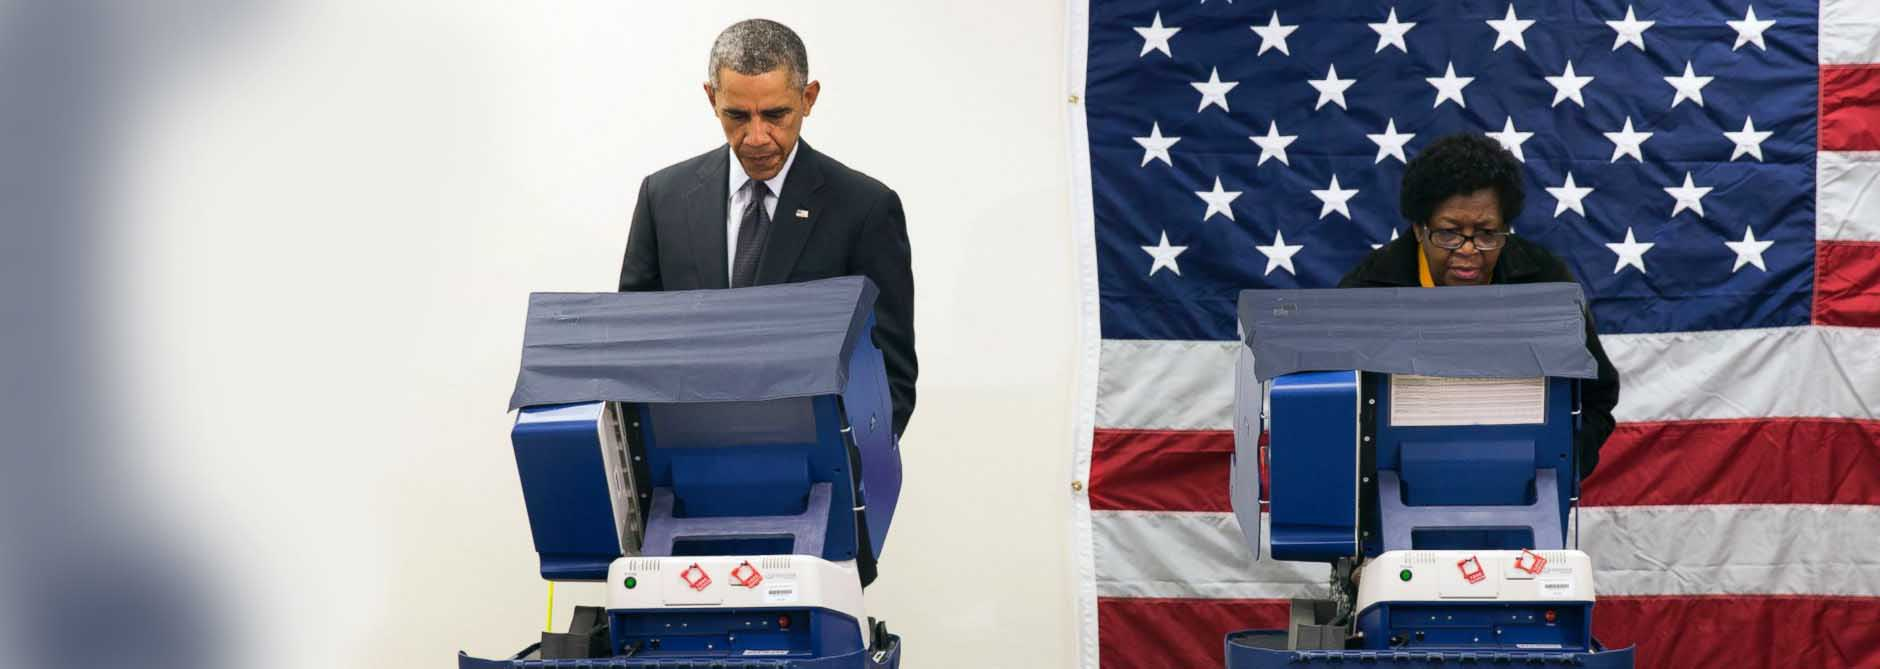 obama_voting-early-voting